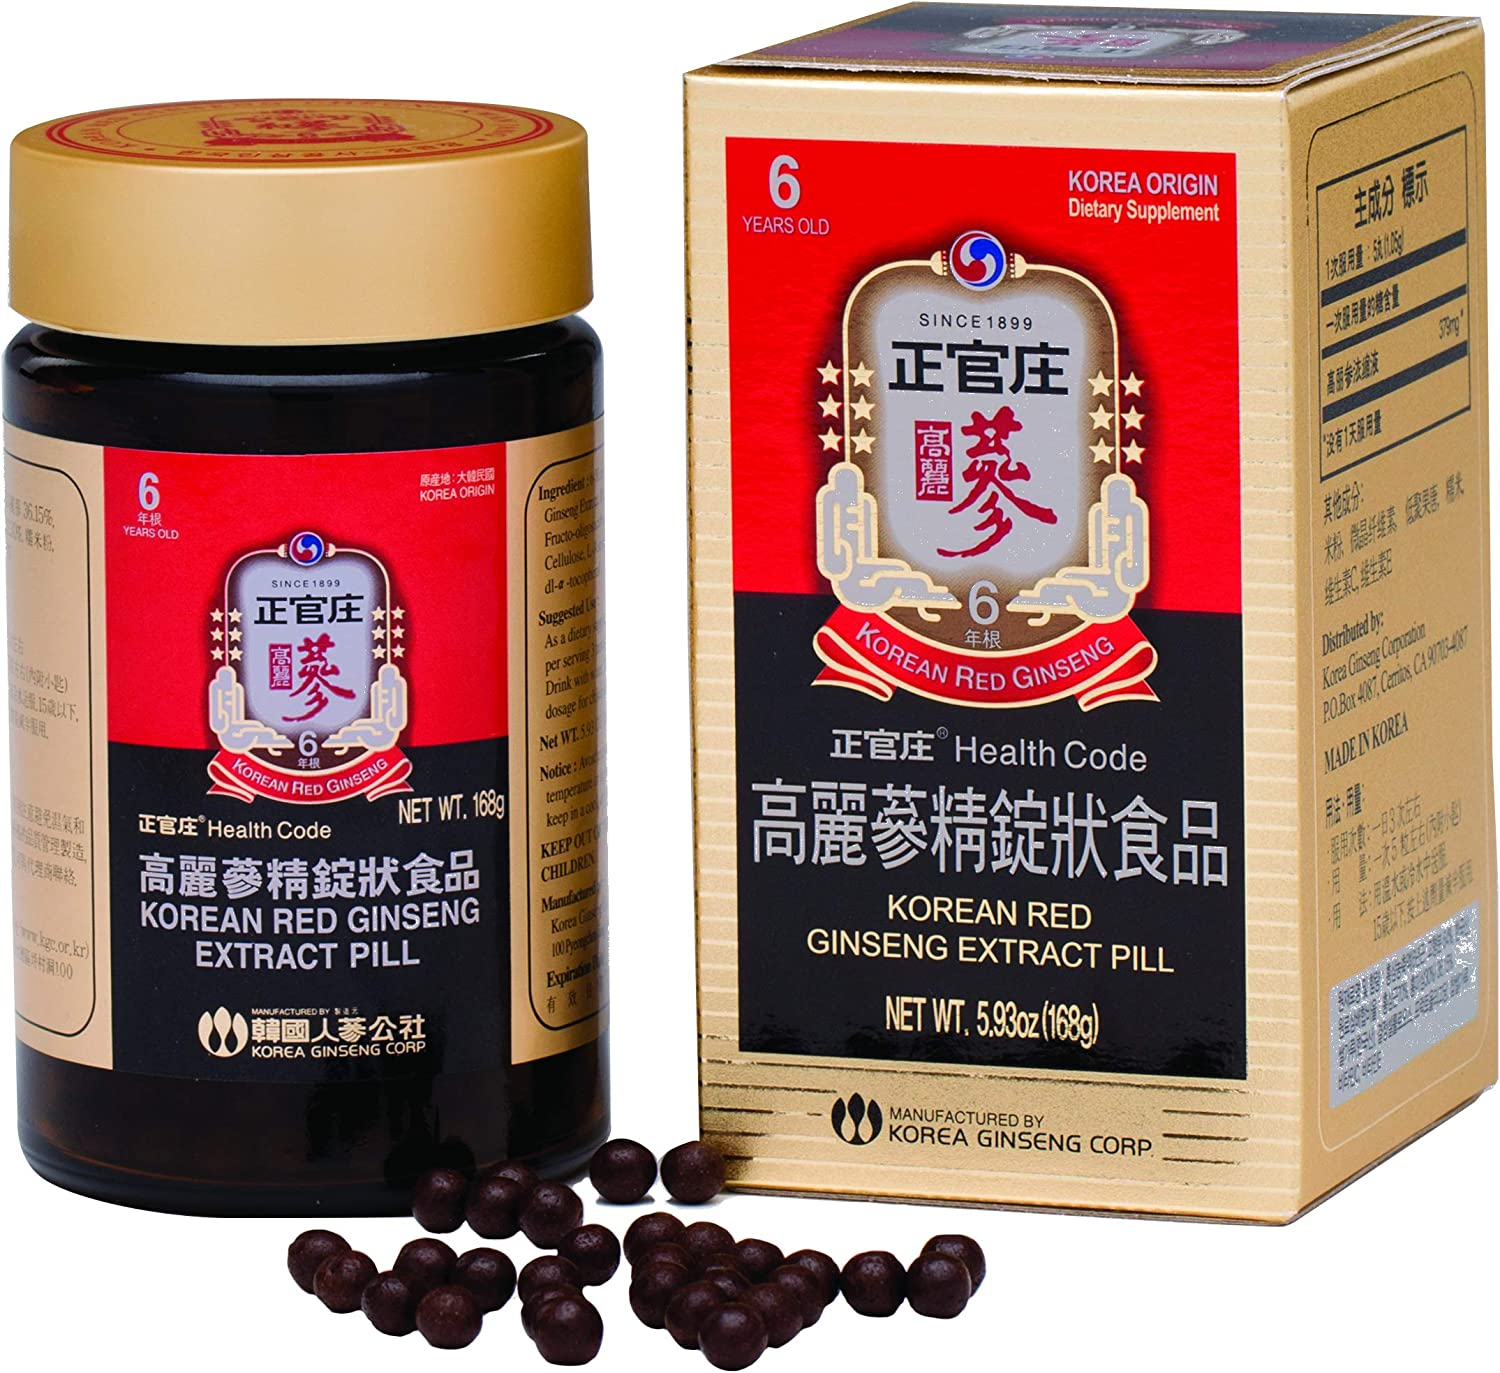 KGC Cheong Kwan Jang Korean Red Ginseng Extract Pill for Extra Strength, Energy, Performance and Mental Health Support – 168 Grams